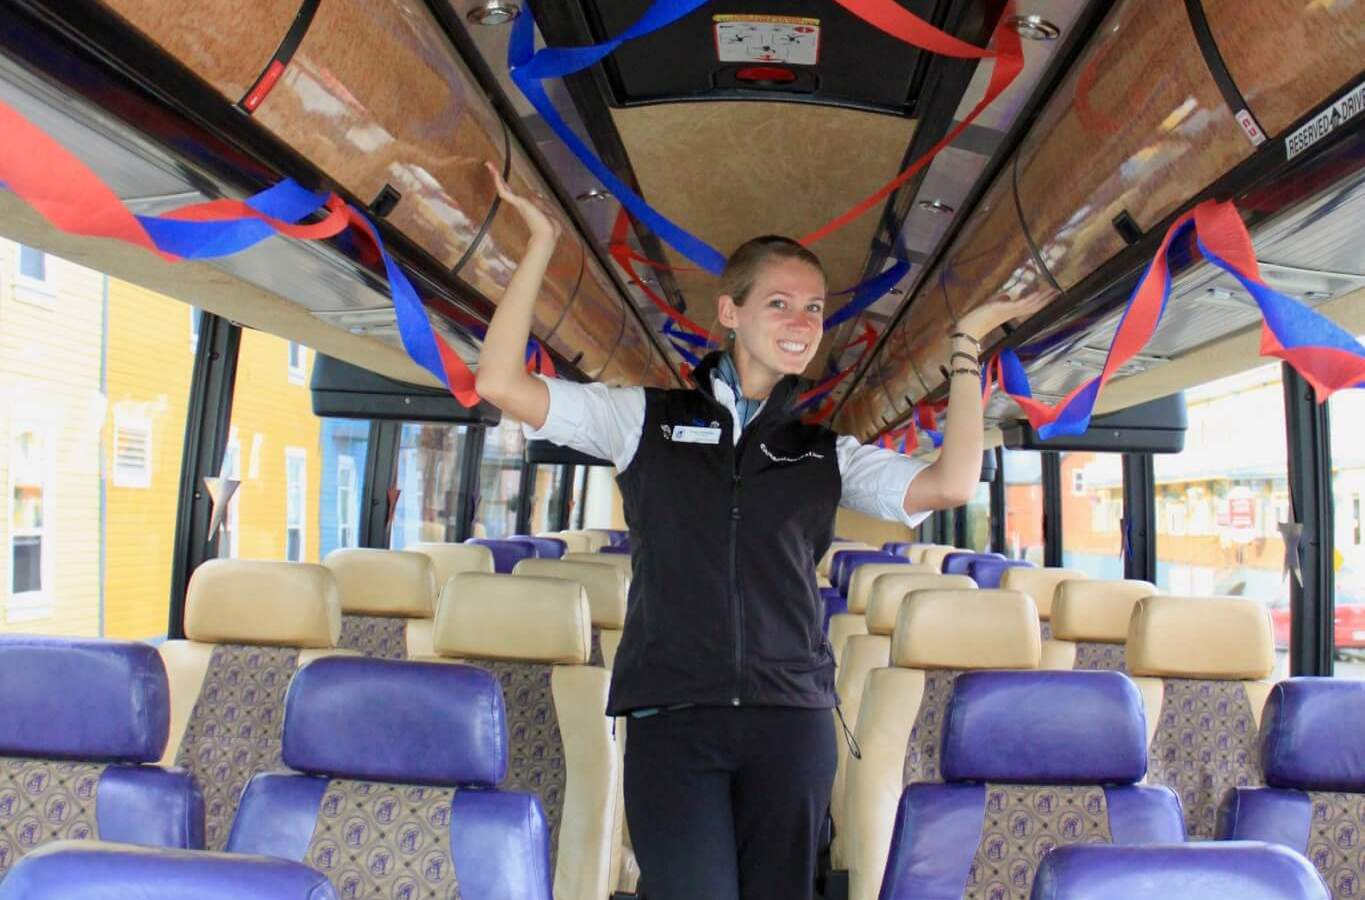 Gwen standing in a tour bus outfitted with red and blue streamers